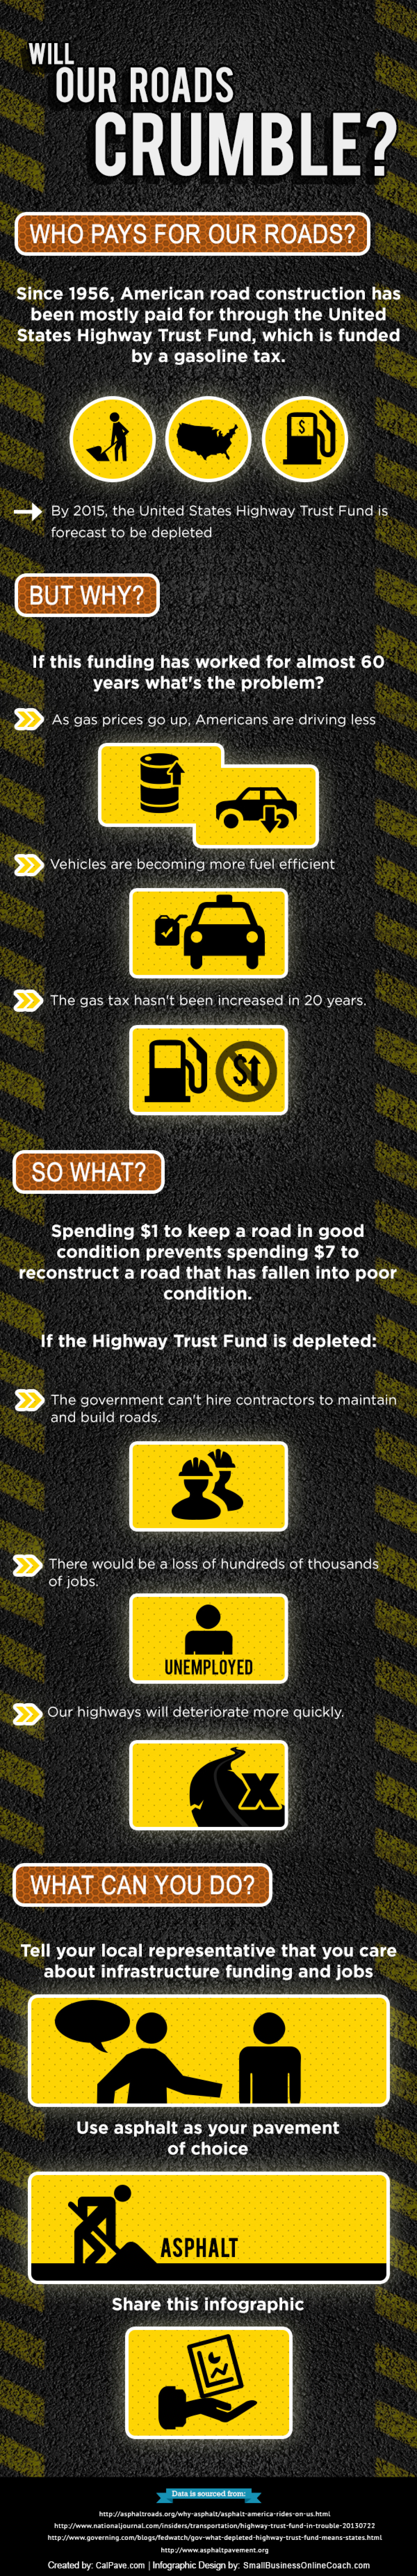 Will Our Roads Crumble Infographic